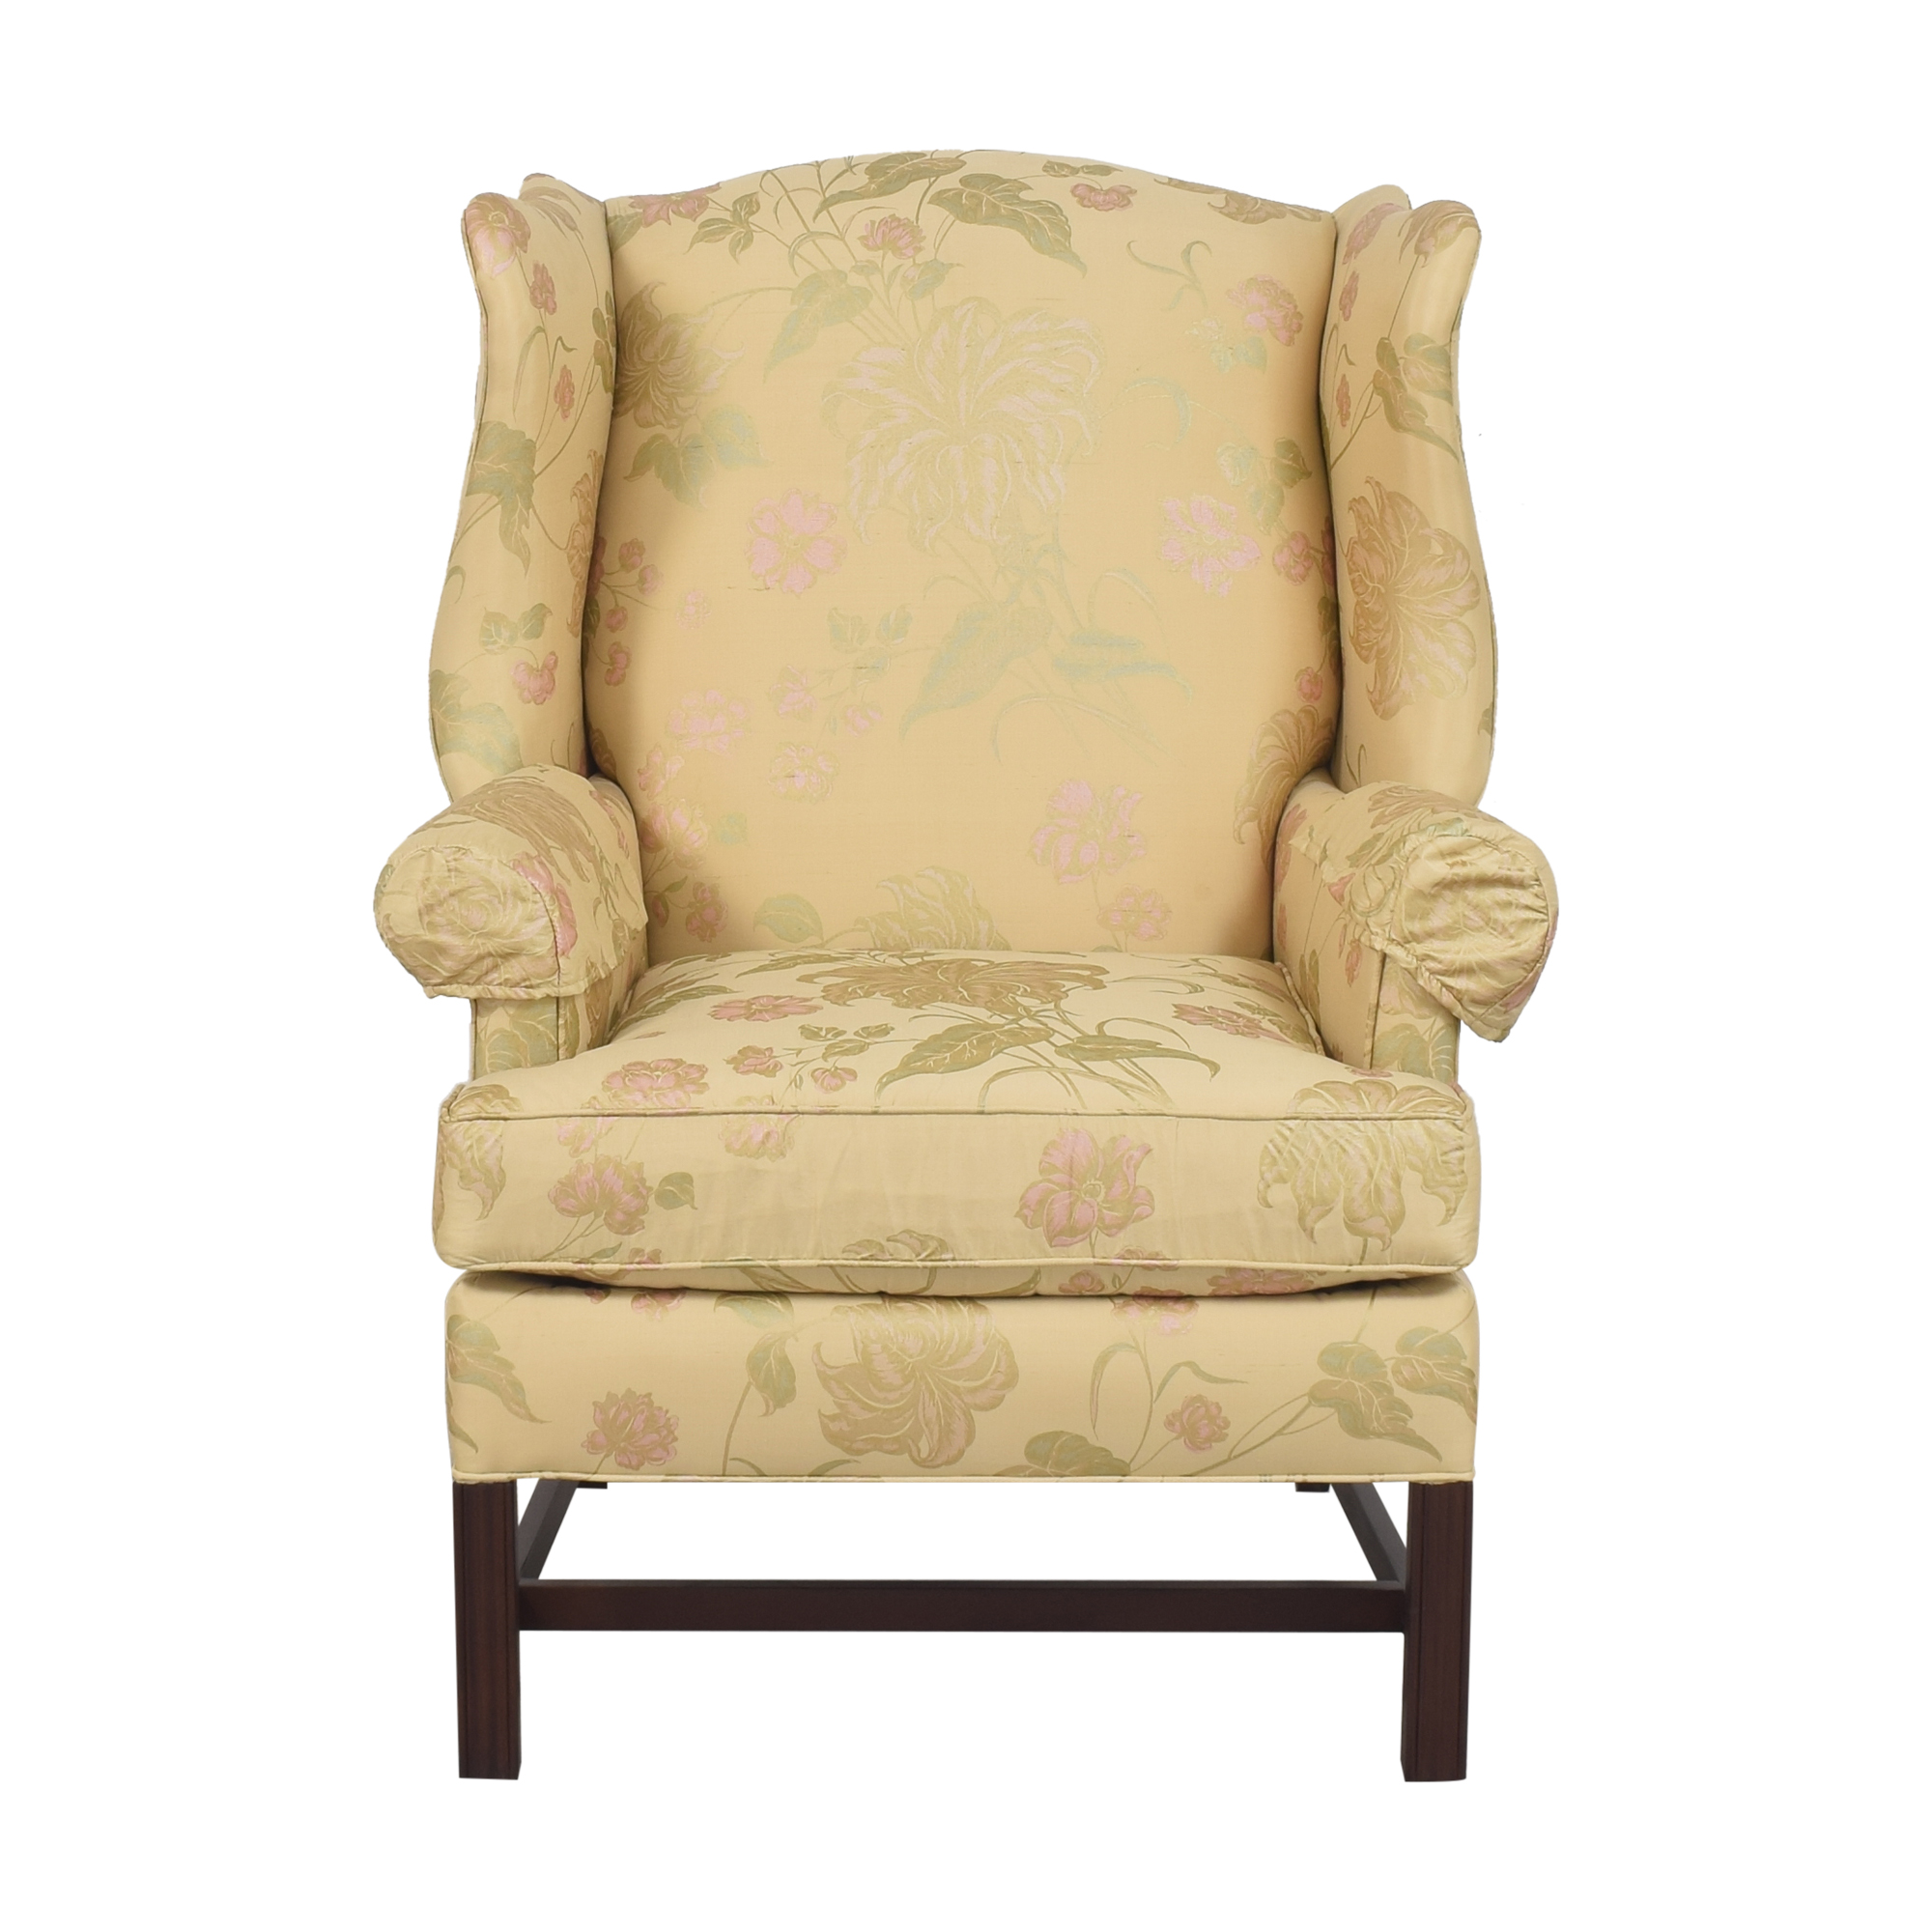 CR Laine CR Laine Upholstered Accent Chair for sale